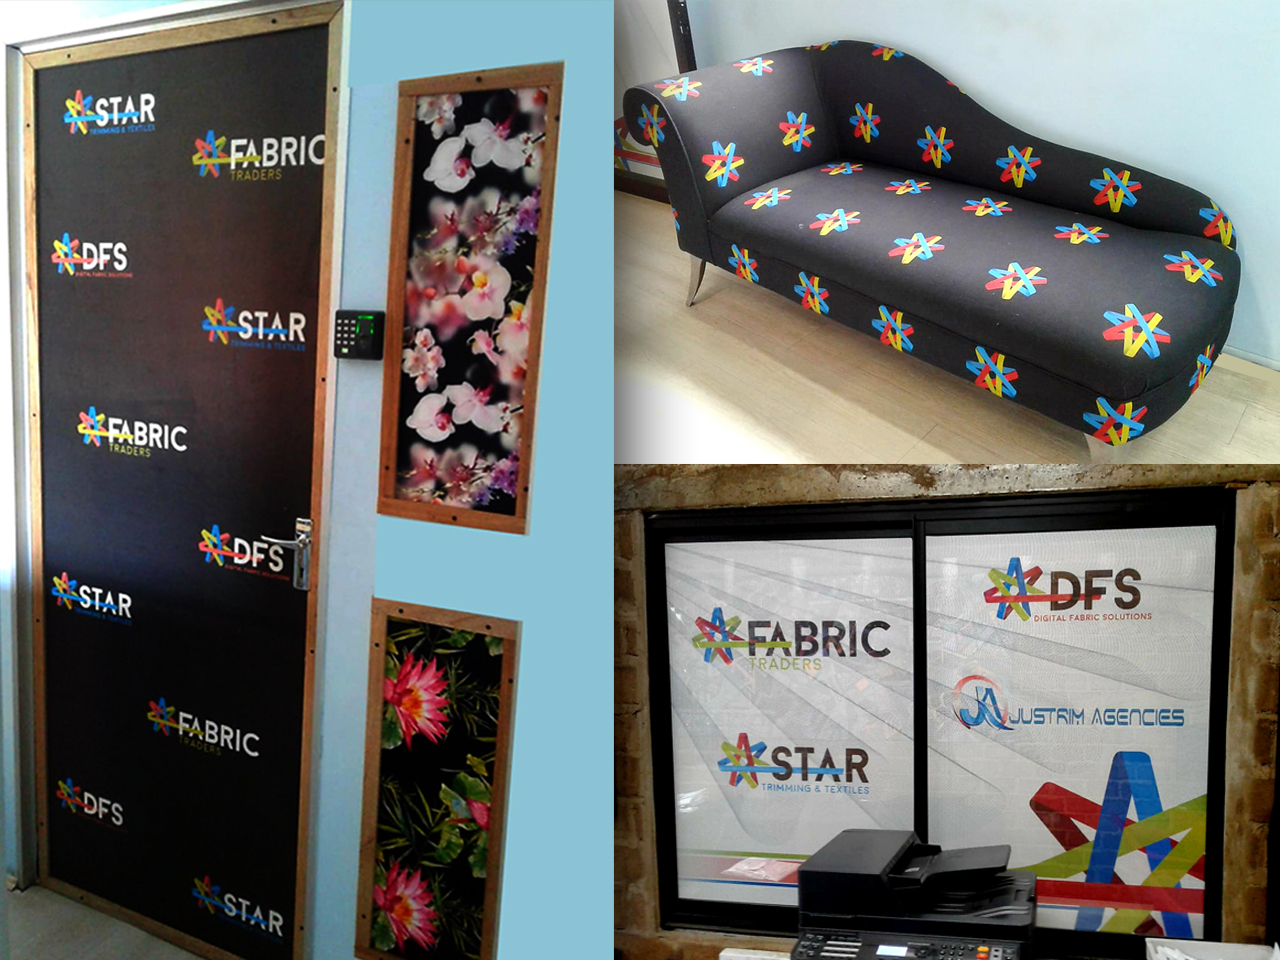 An innovative way to combine brand awareness with a creative office environment is to print your company logo on an existing couch and compliment it with branding on glass doors and windows